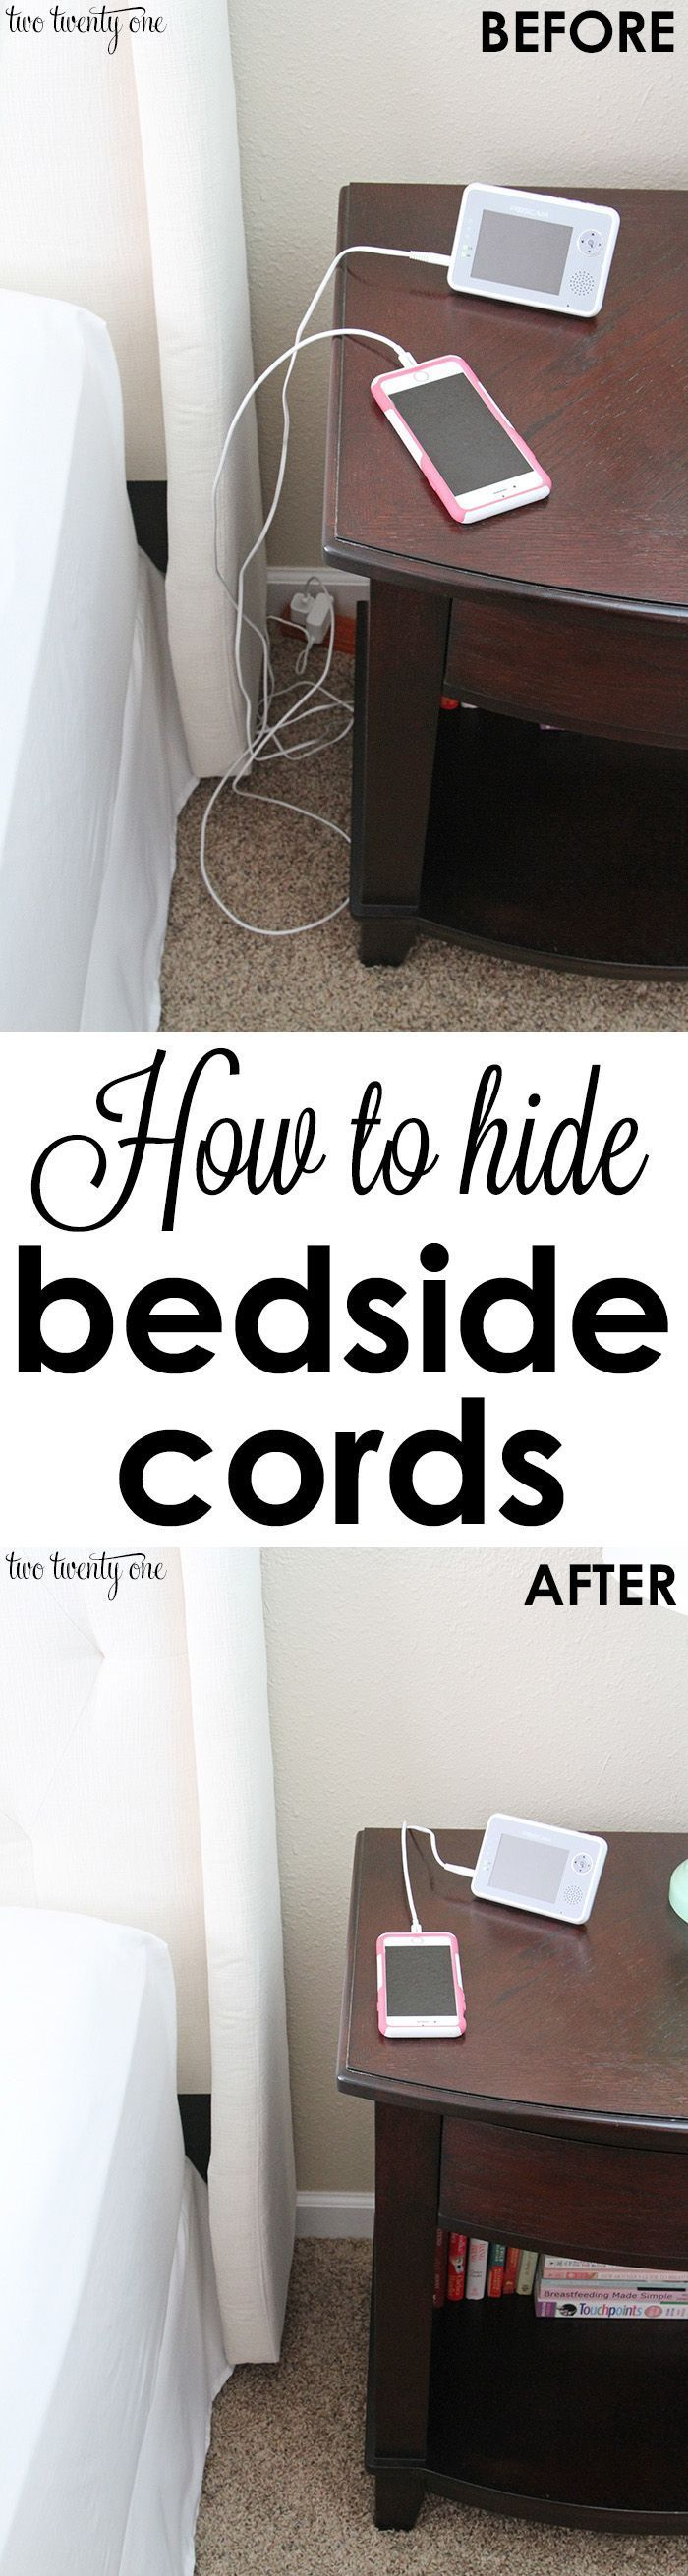 How to hide and organize bedside cords!